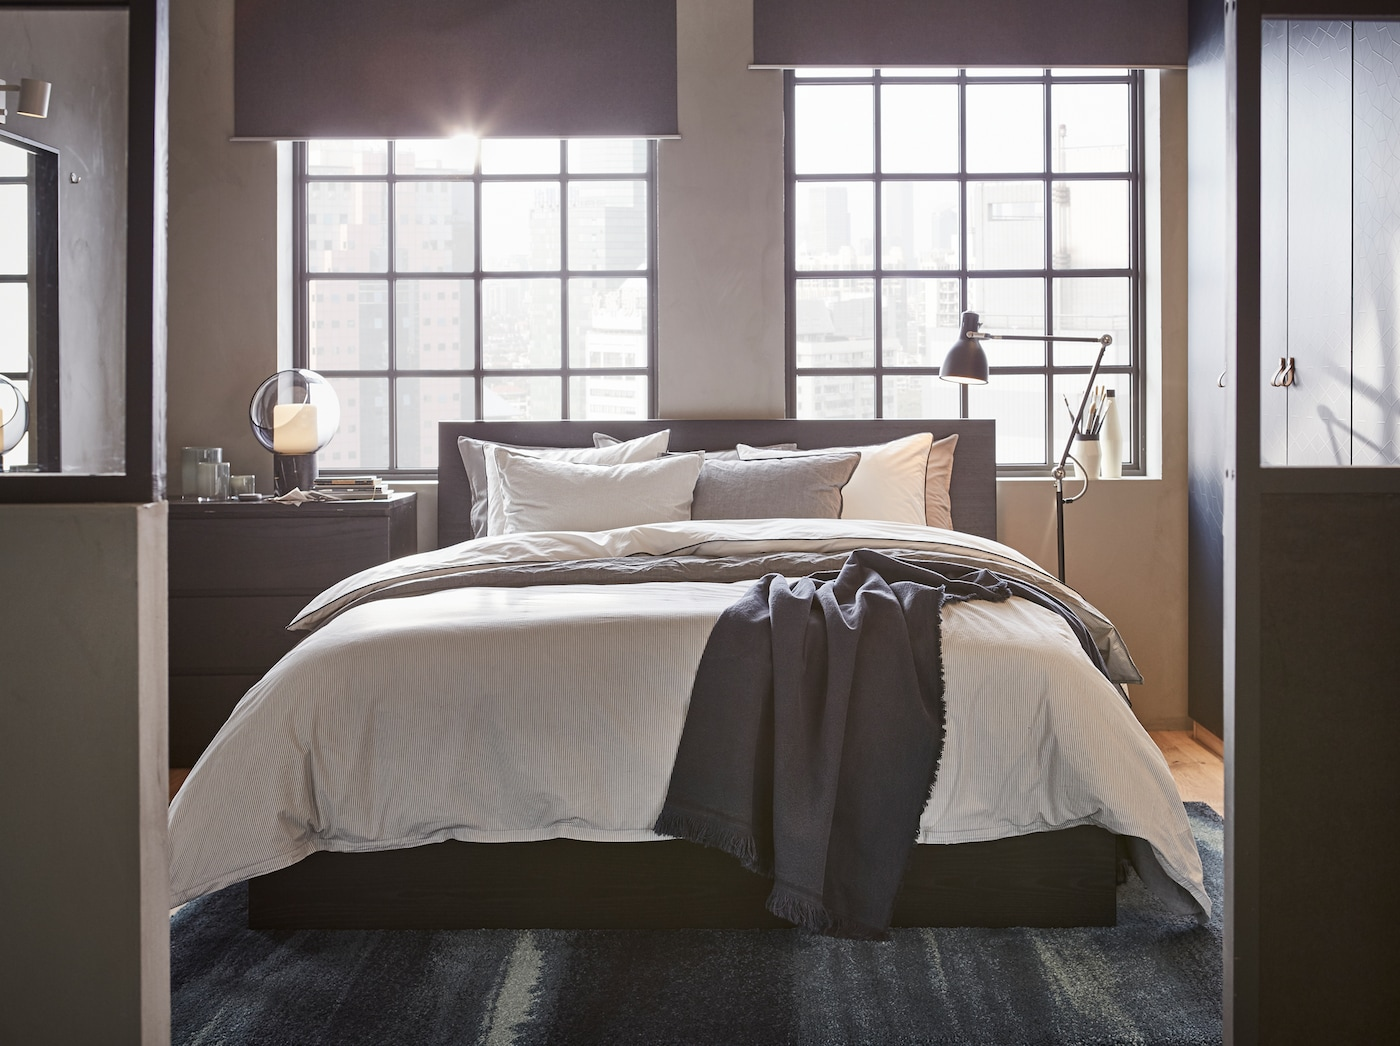 IKEA MALM black brown high bedframe is made of sleek veneer and modern in design with clean lines and edges. Soften the look with BLÅVINDA and KUNGSBLOMMA quilt covers and bedsheets.